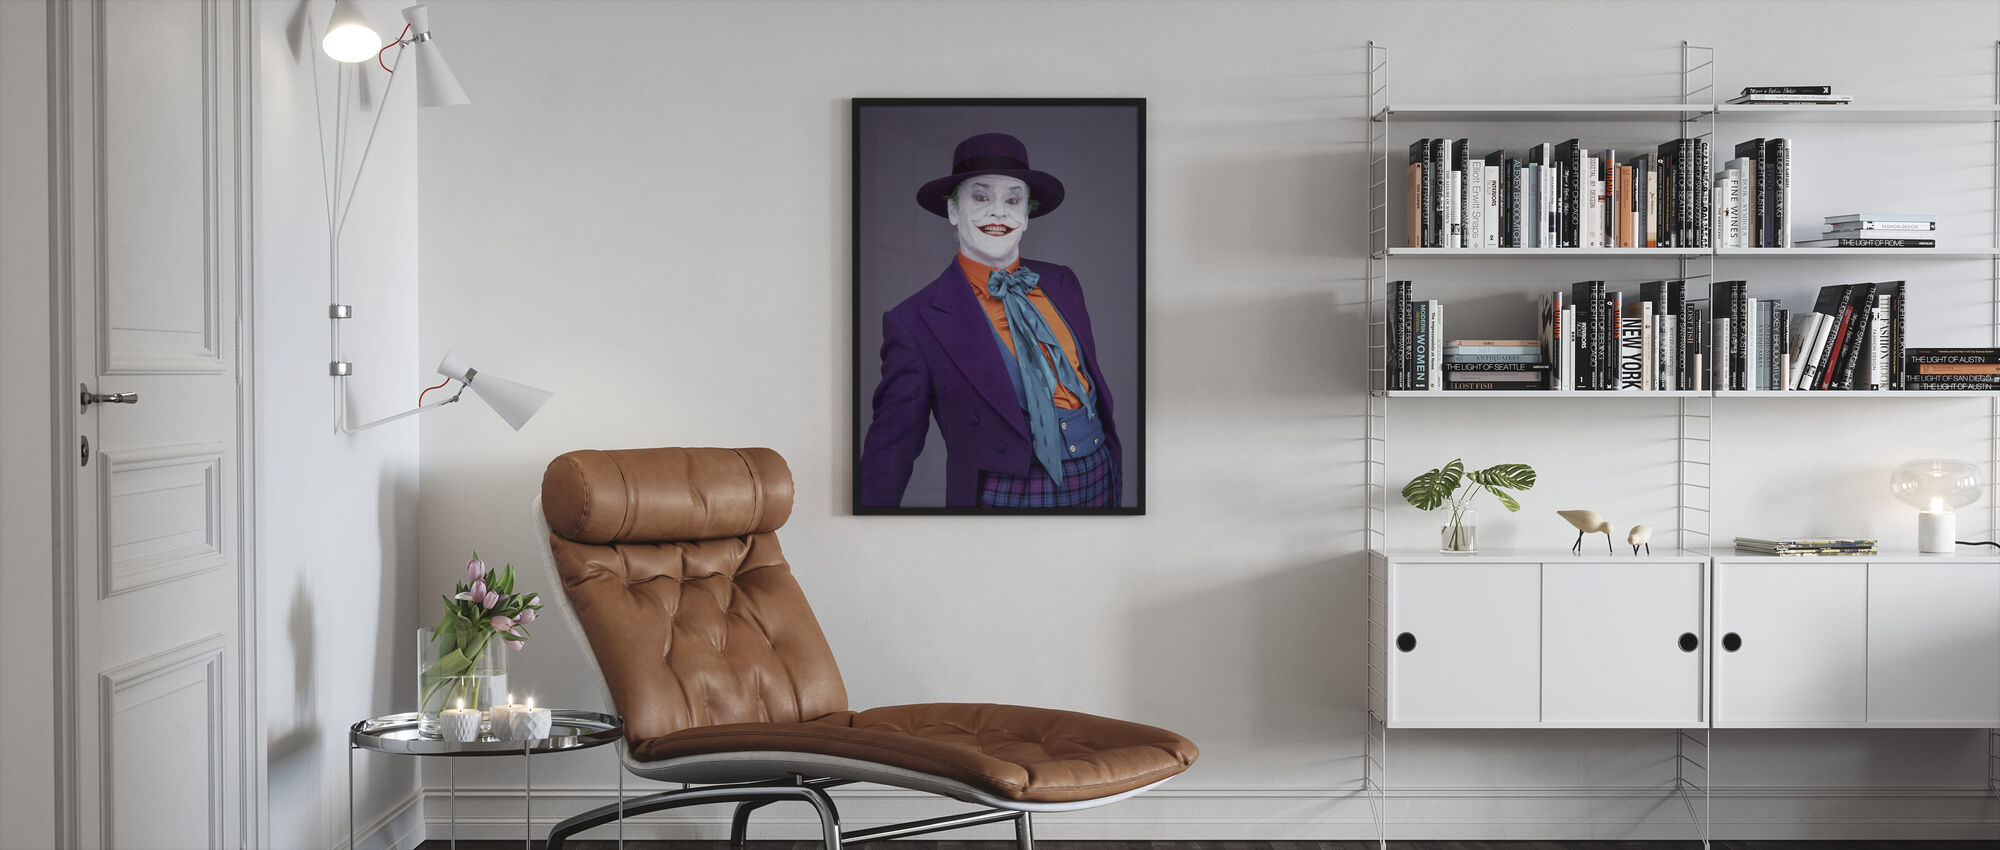 Jack Nicholson in Batman - Framed print - Living Room